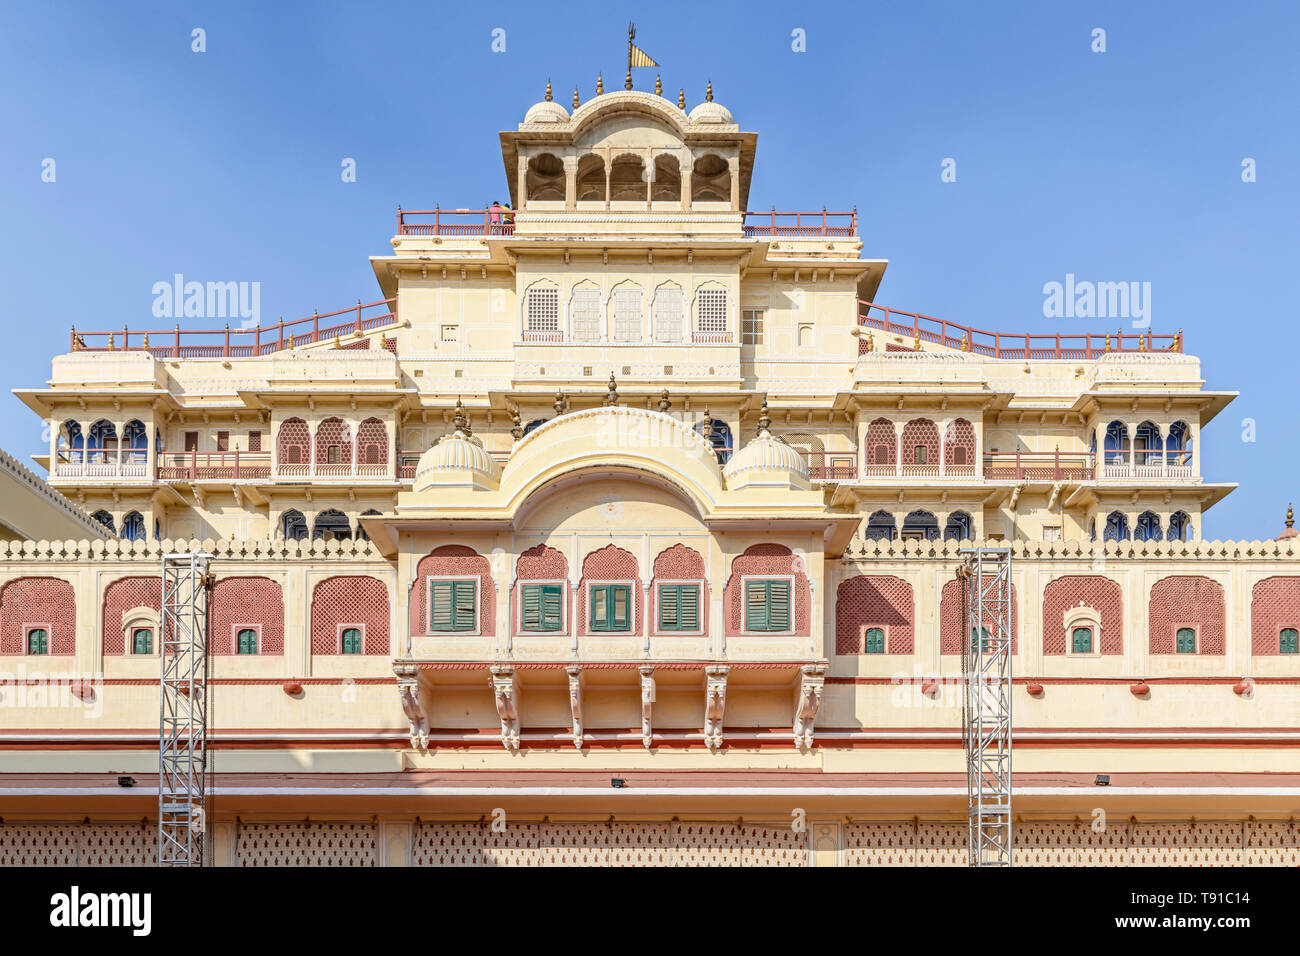 Facade of the Chandra Mahal, the residence of royal family in Jaipur City Palace, Jaipur, Rajasthan, India - Stock Image